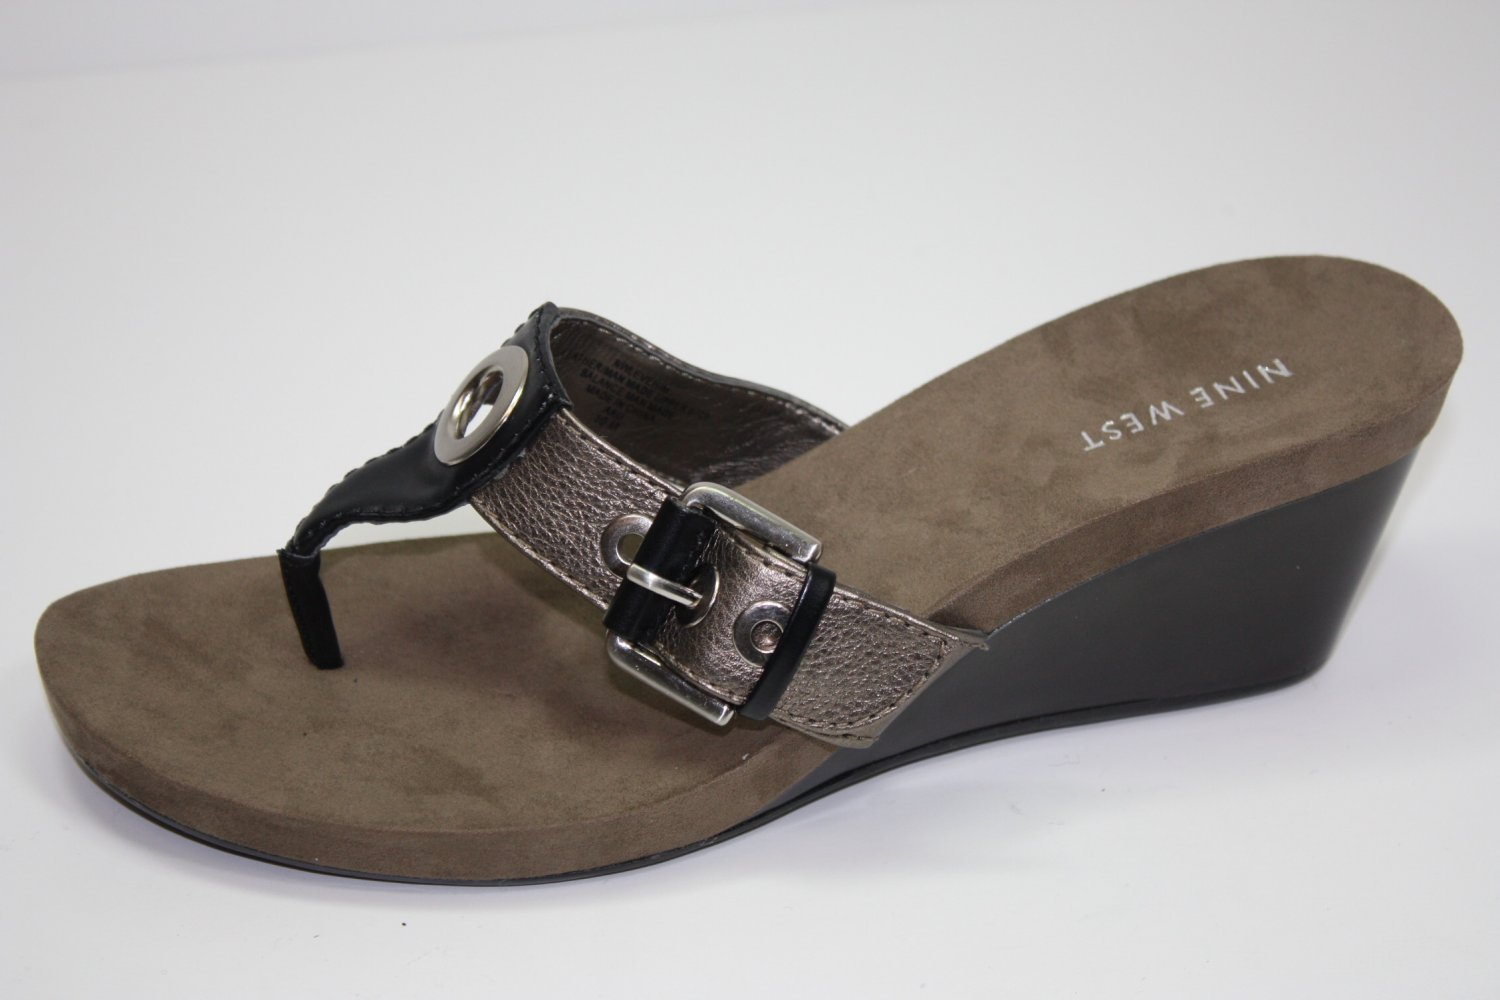 Nine West Levehim Sandals Bronze Shoes US 10 $69